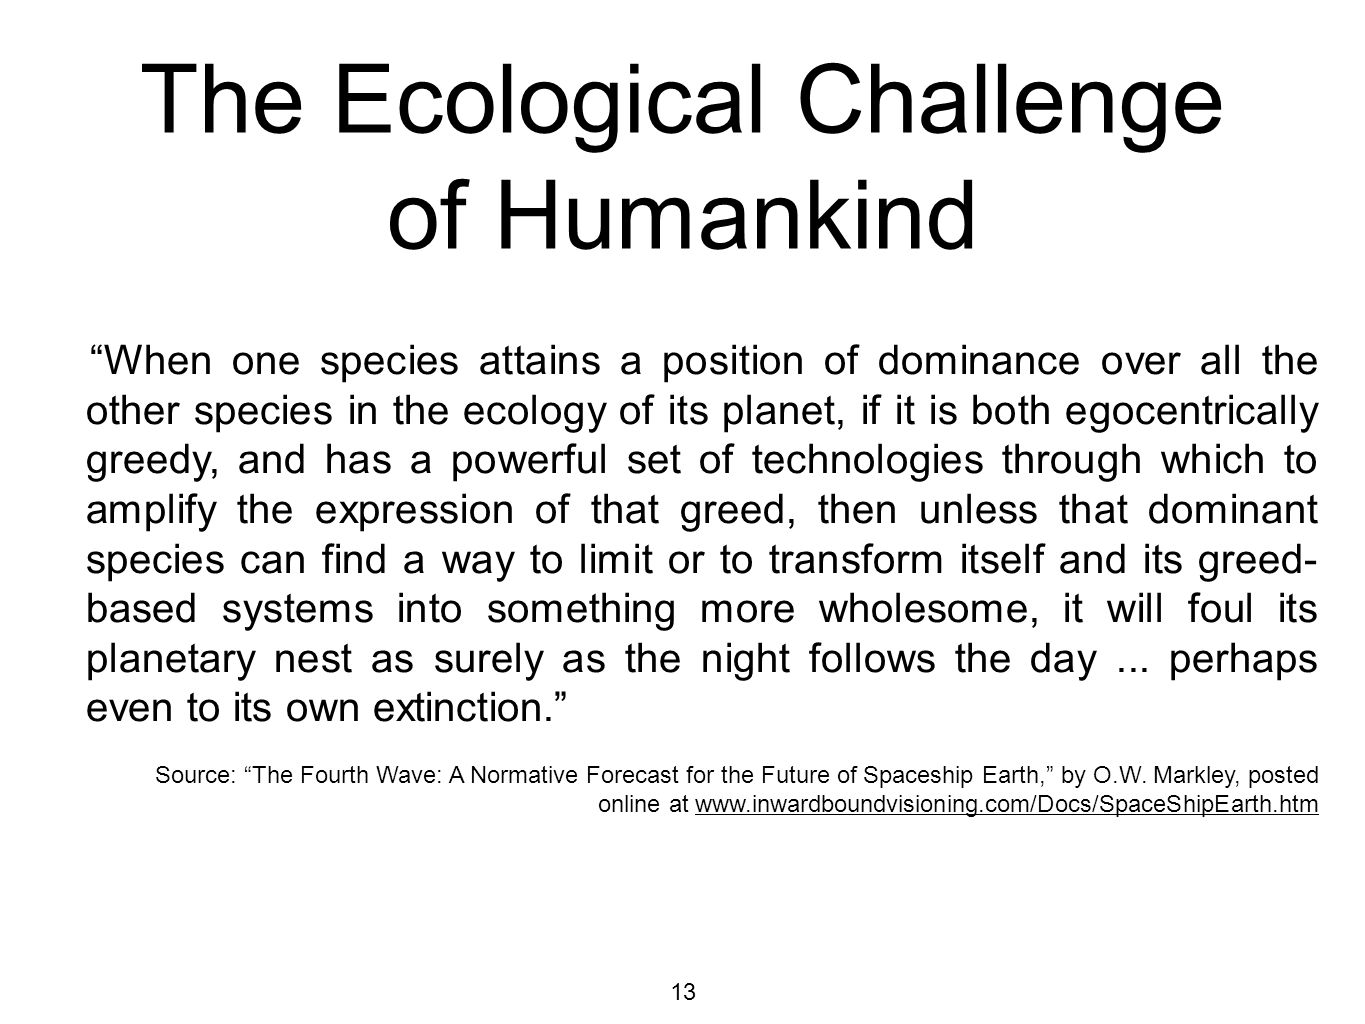 13 The Ecological Challenge of Humankind When one species attains a position of dominance over all the other species in the ecology of its planet, if it is both egocentrically greedy, and has a powerful set of technologies through which to amplify the expression of that greed, then unless that dominant species can find a way to limit or to transform itself and its greed- based systems into something more wholesome, it will foul its planetary nest as surely as the night follows the day...